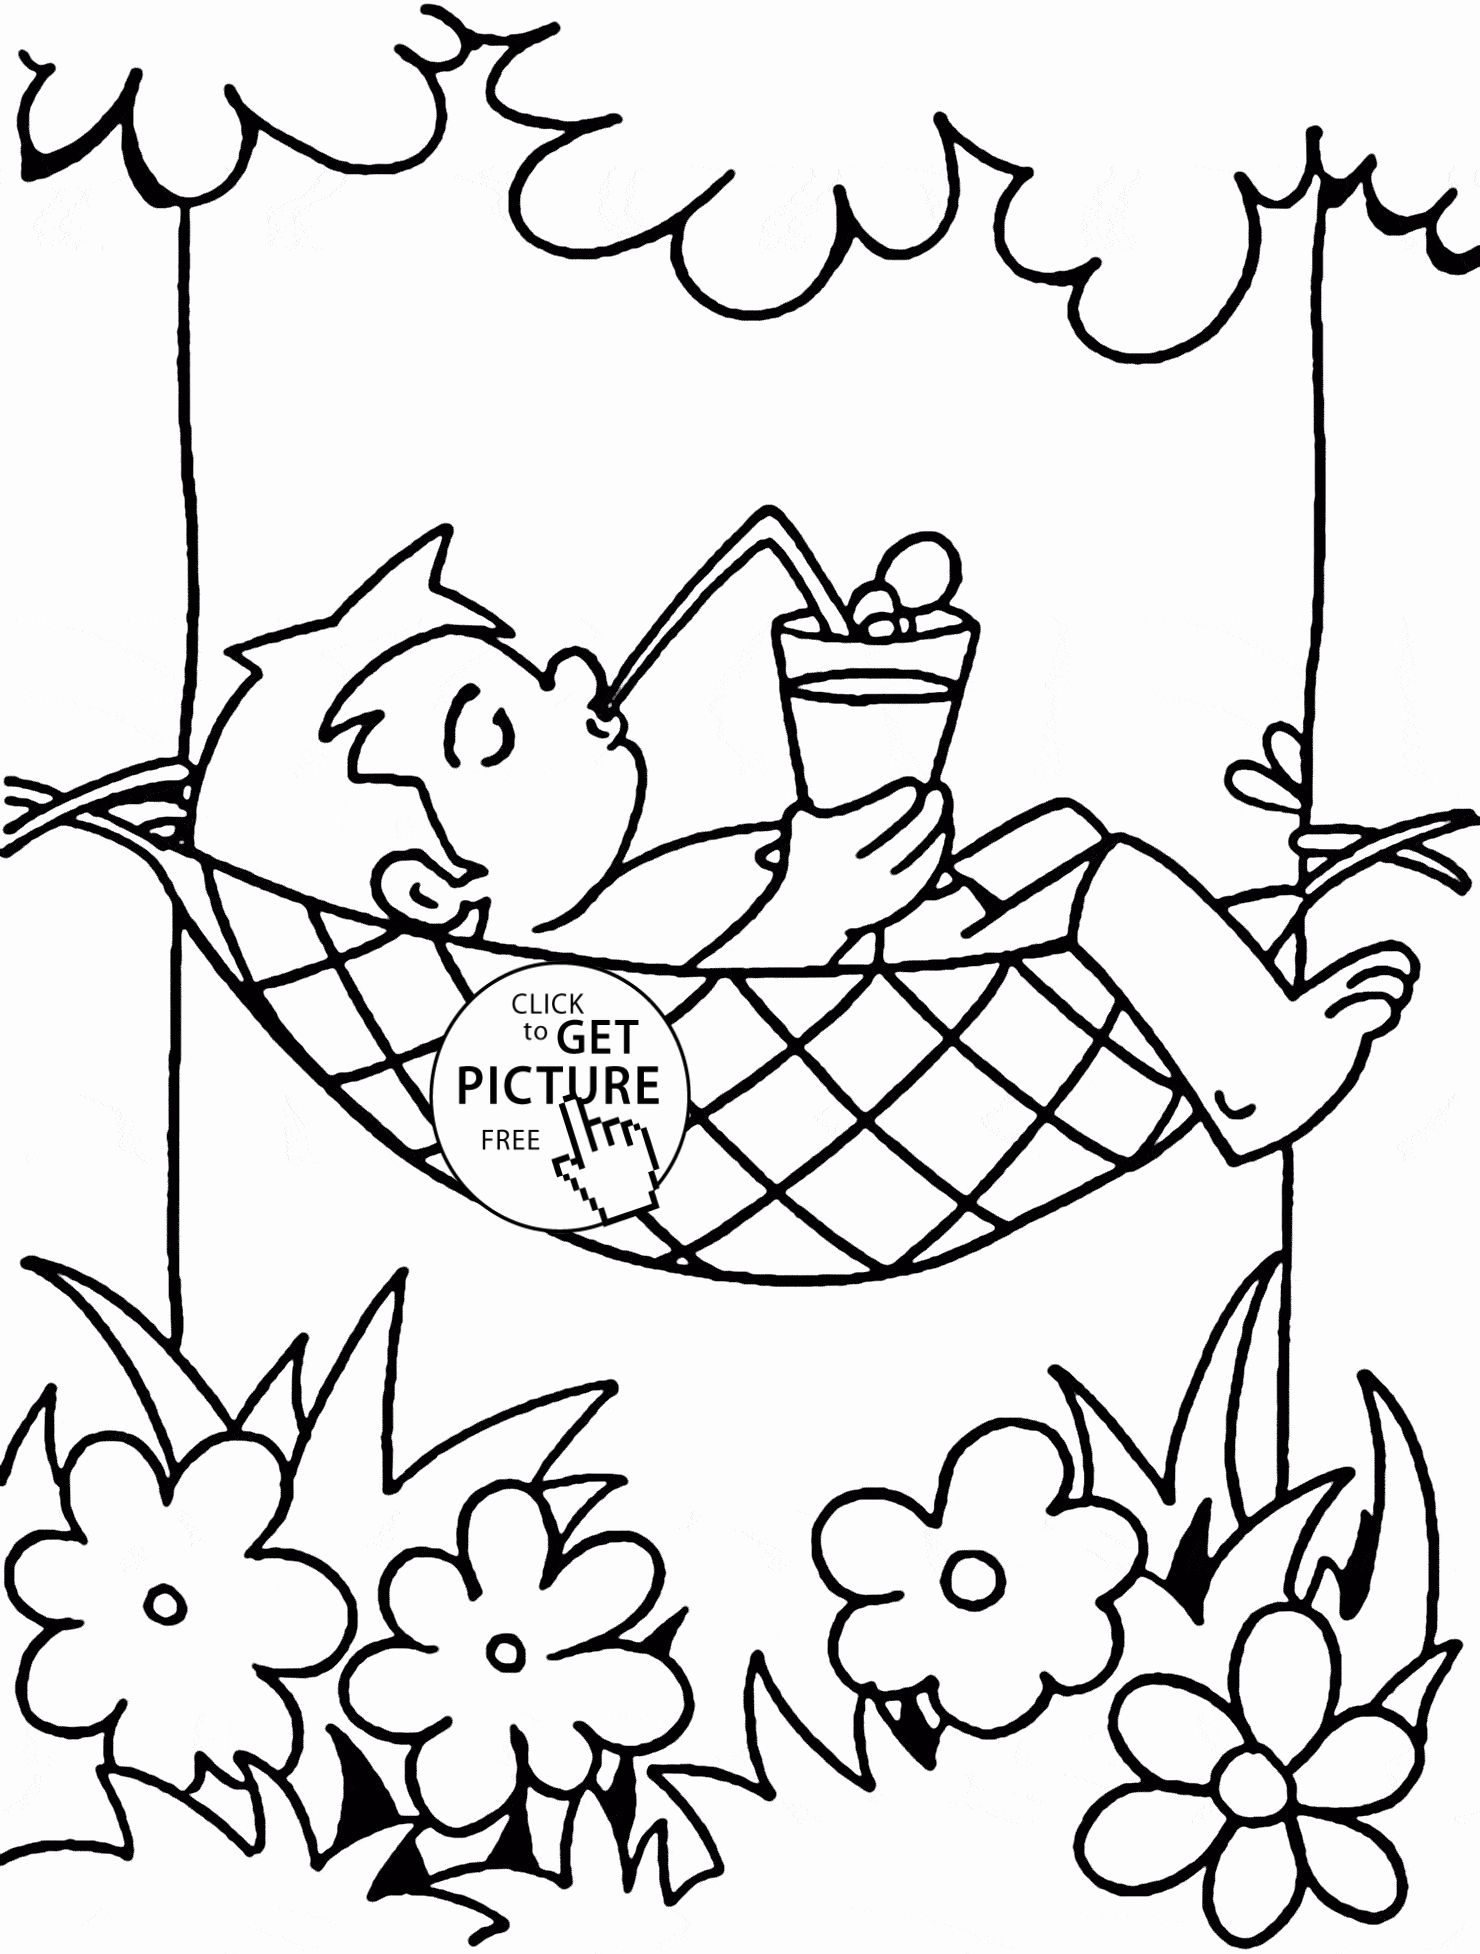 Summer Time Coloring Sheets In 2020 With Images Summer